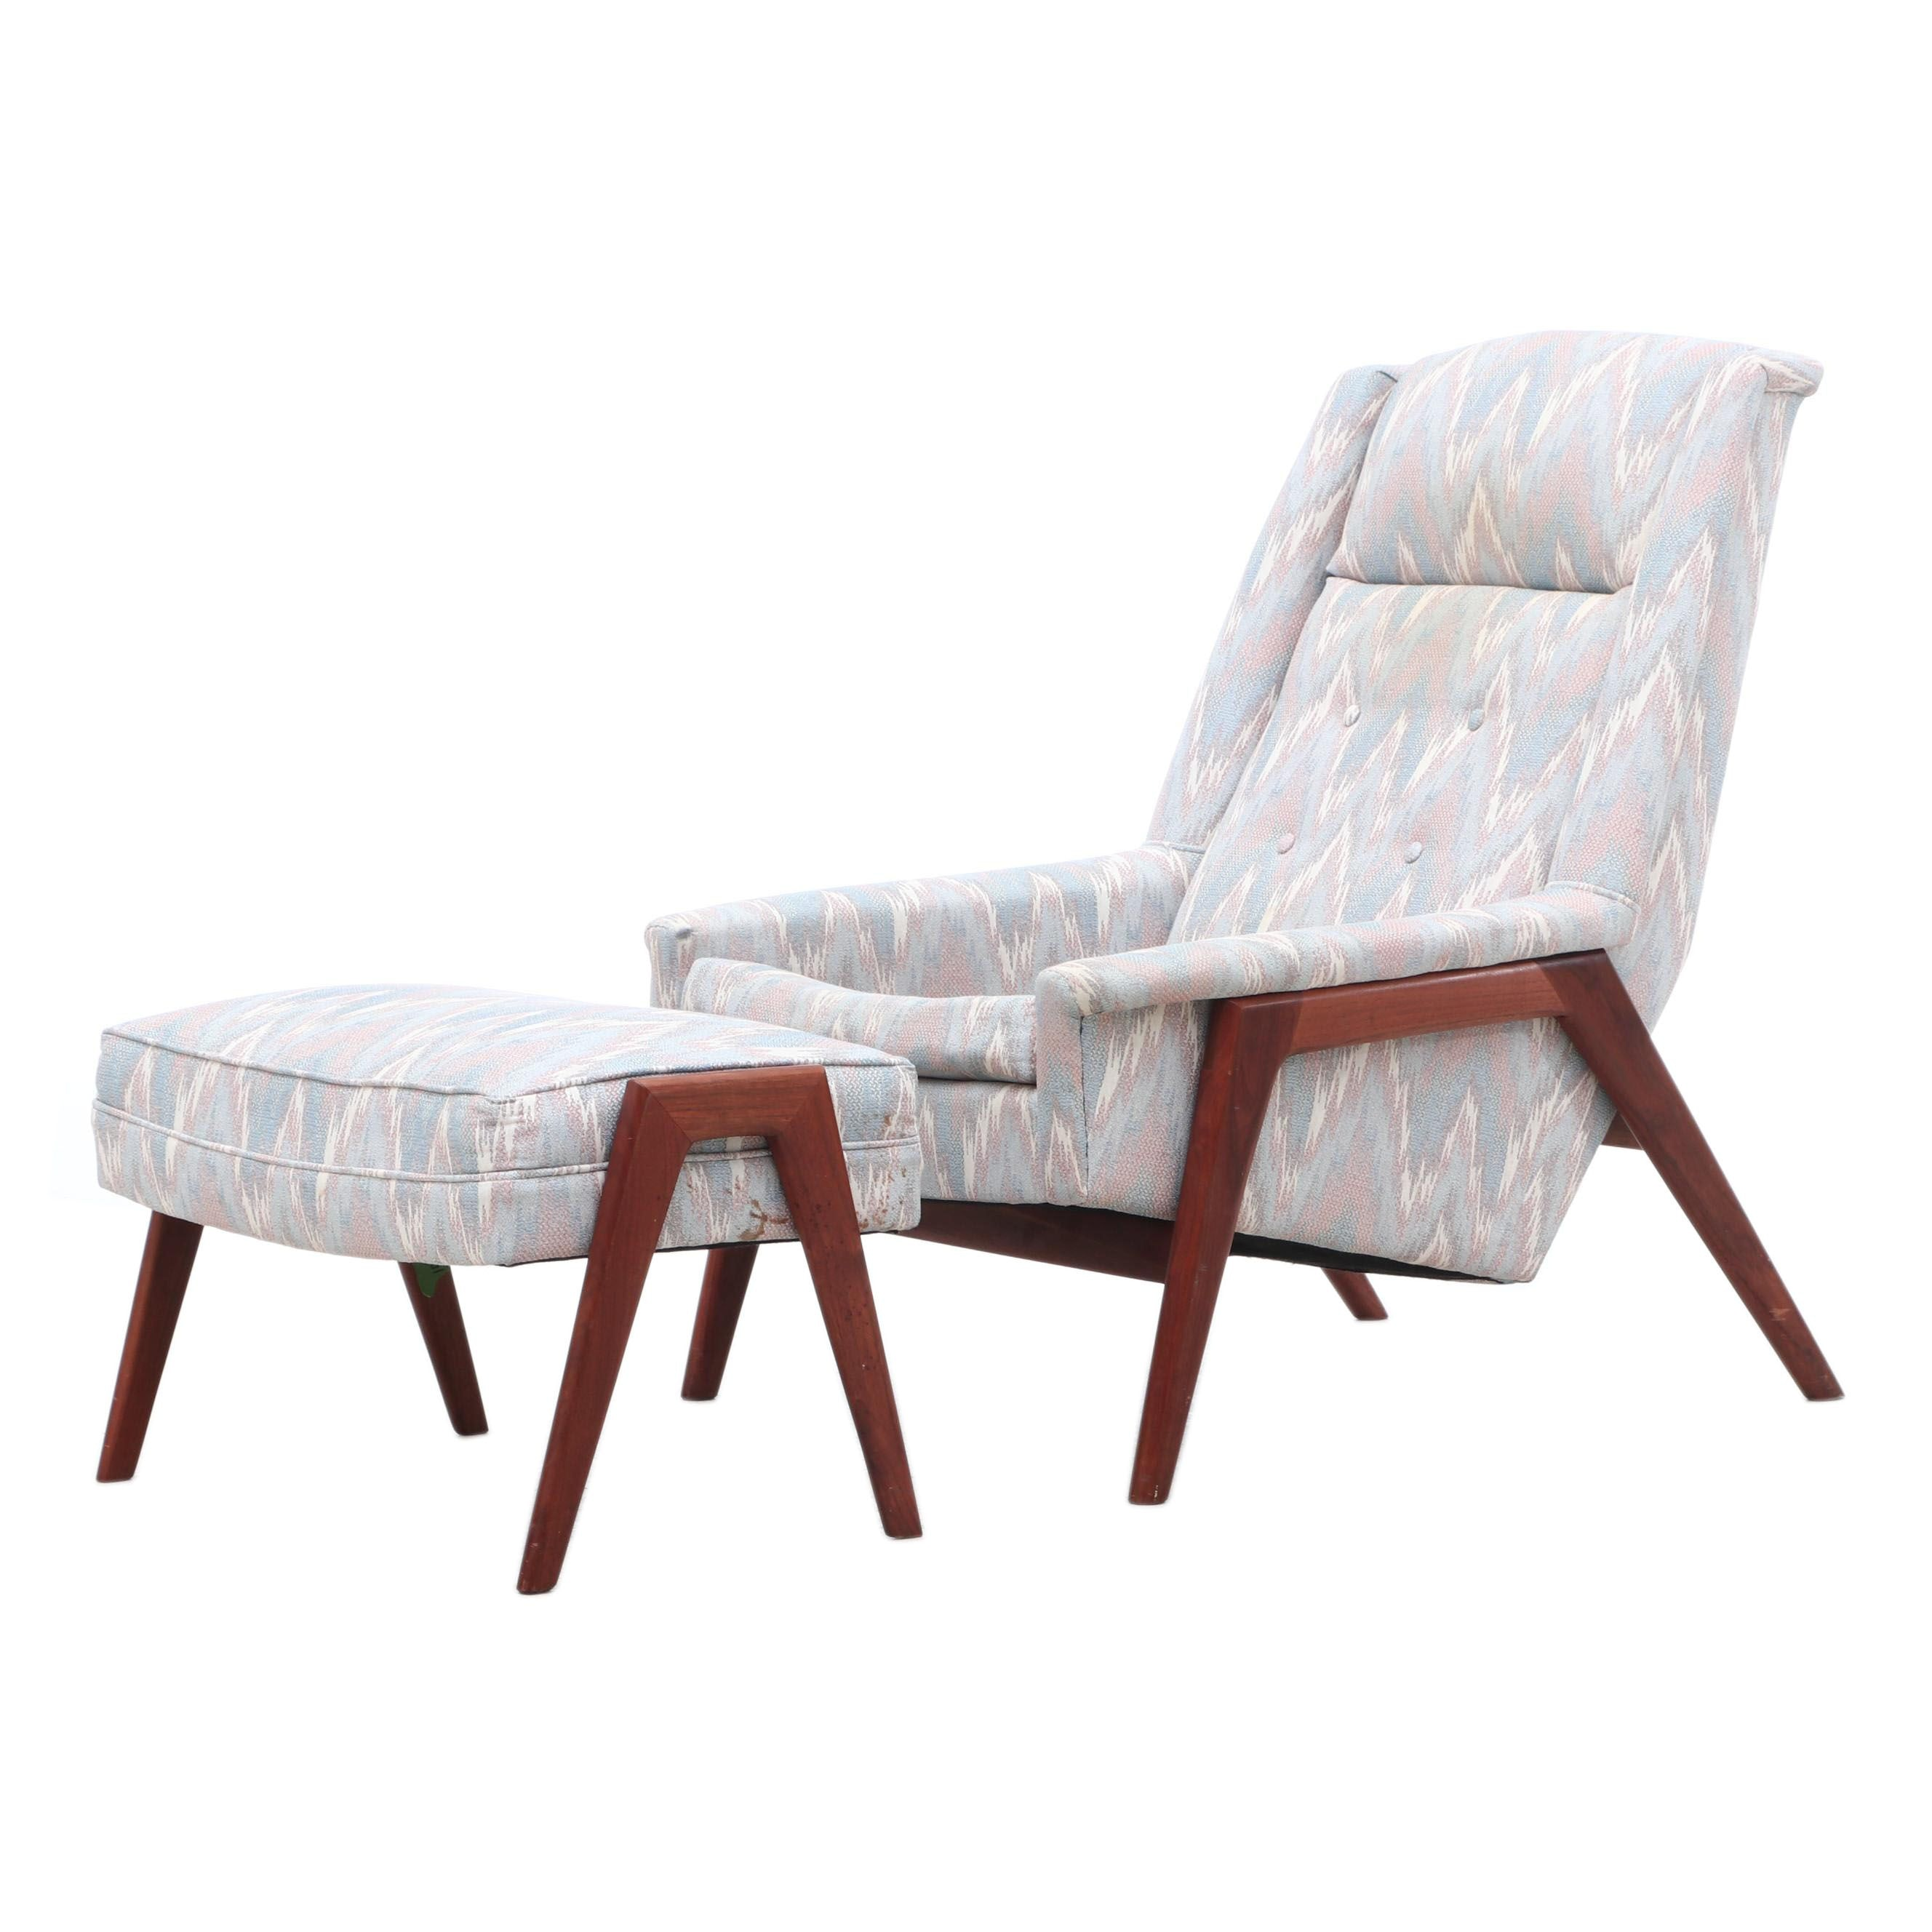 Mid Century Modern Upholstered Arm Chair with Ottoman